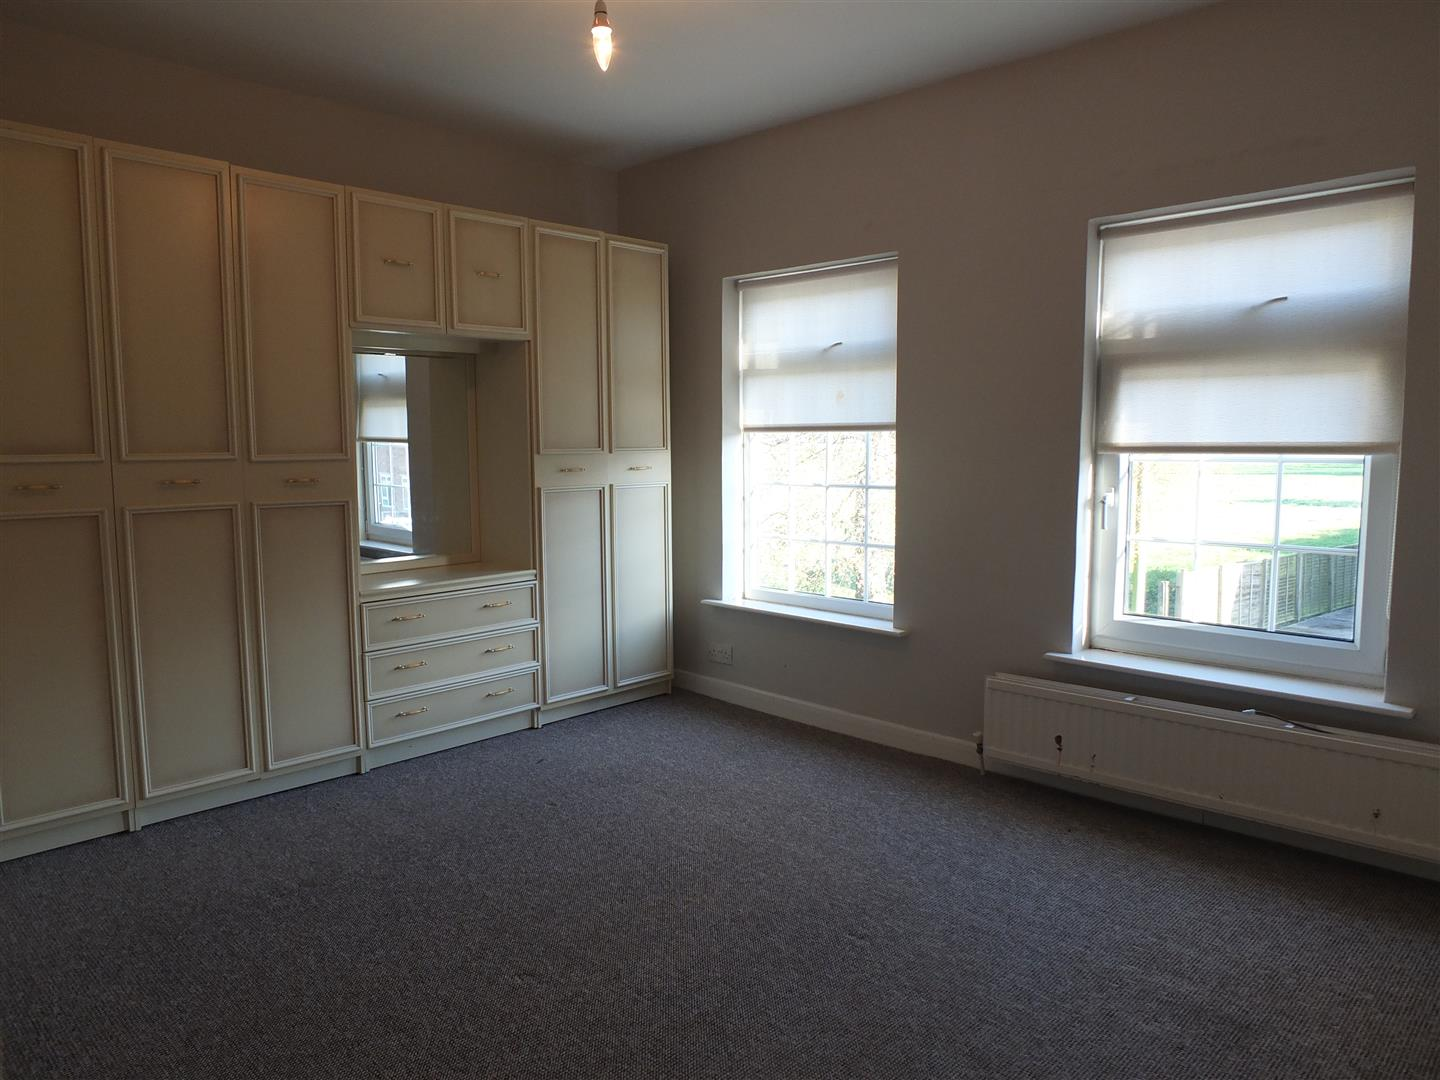 2 bed terraced house to rent in Sutton Bridge Spalding, PE12 9SX 6